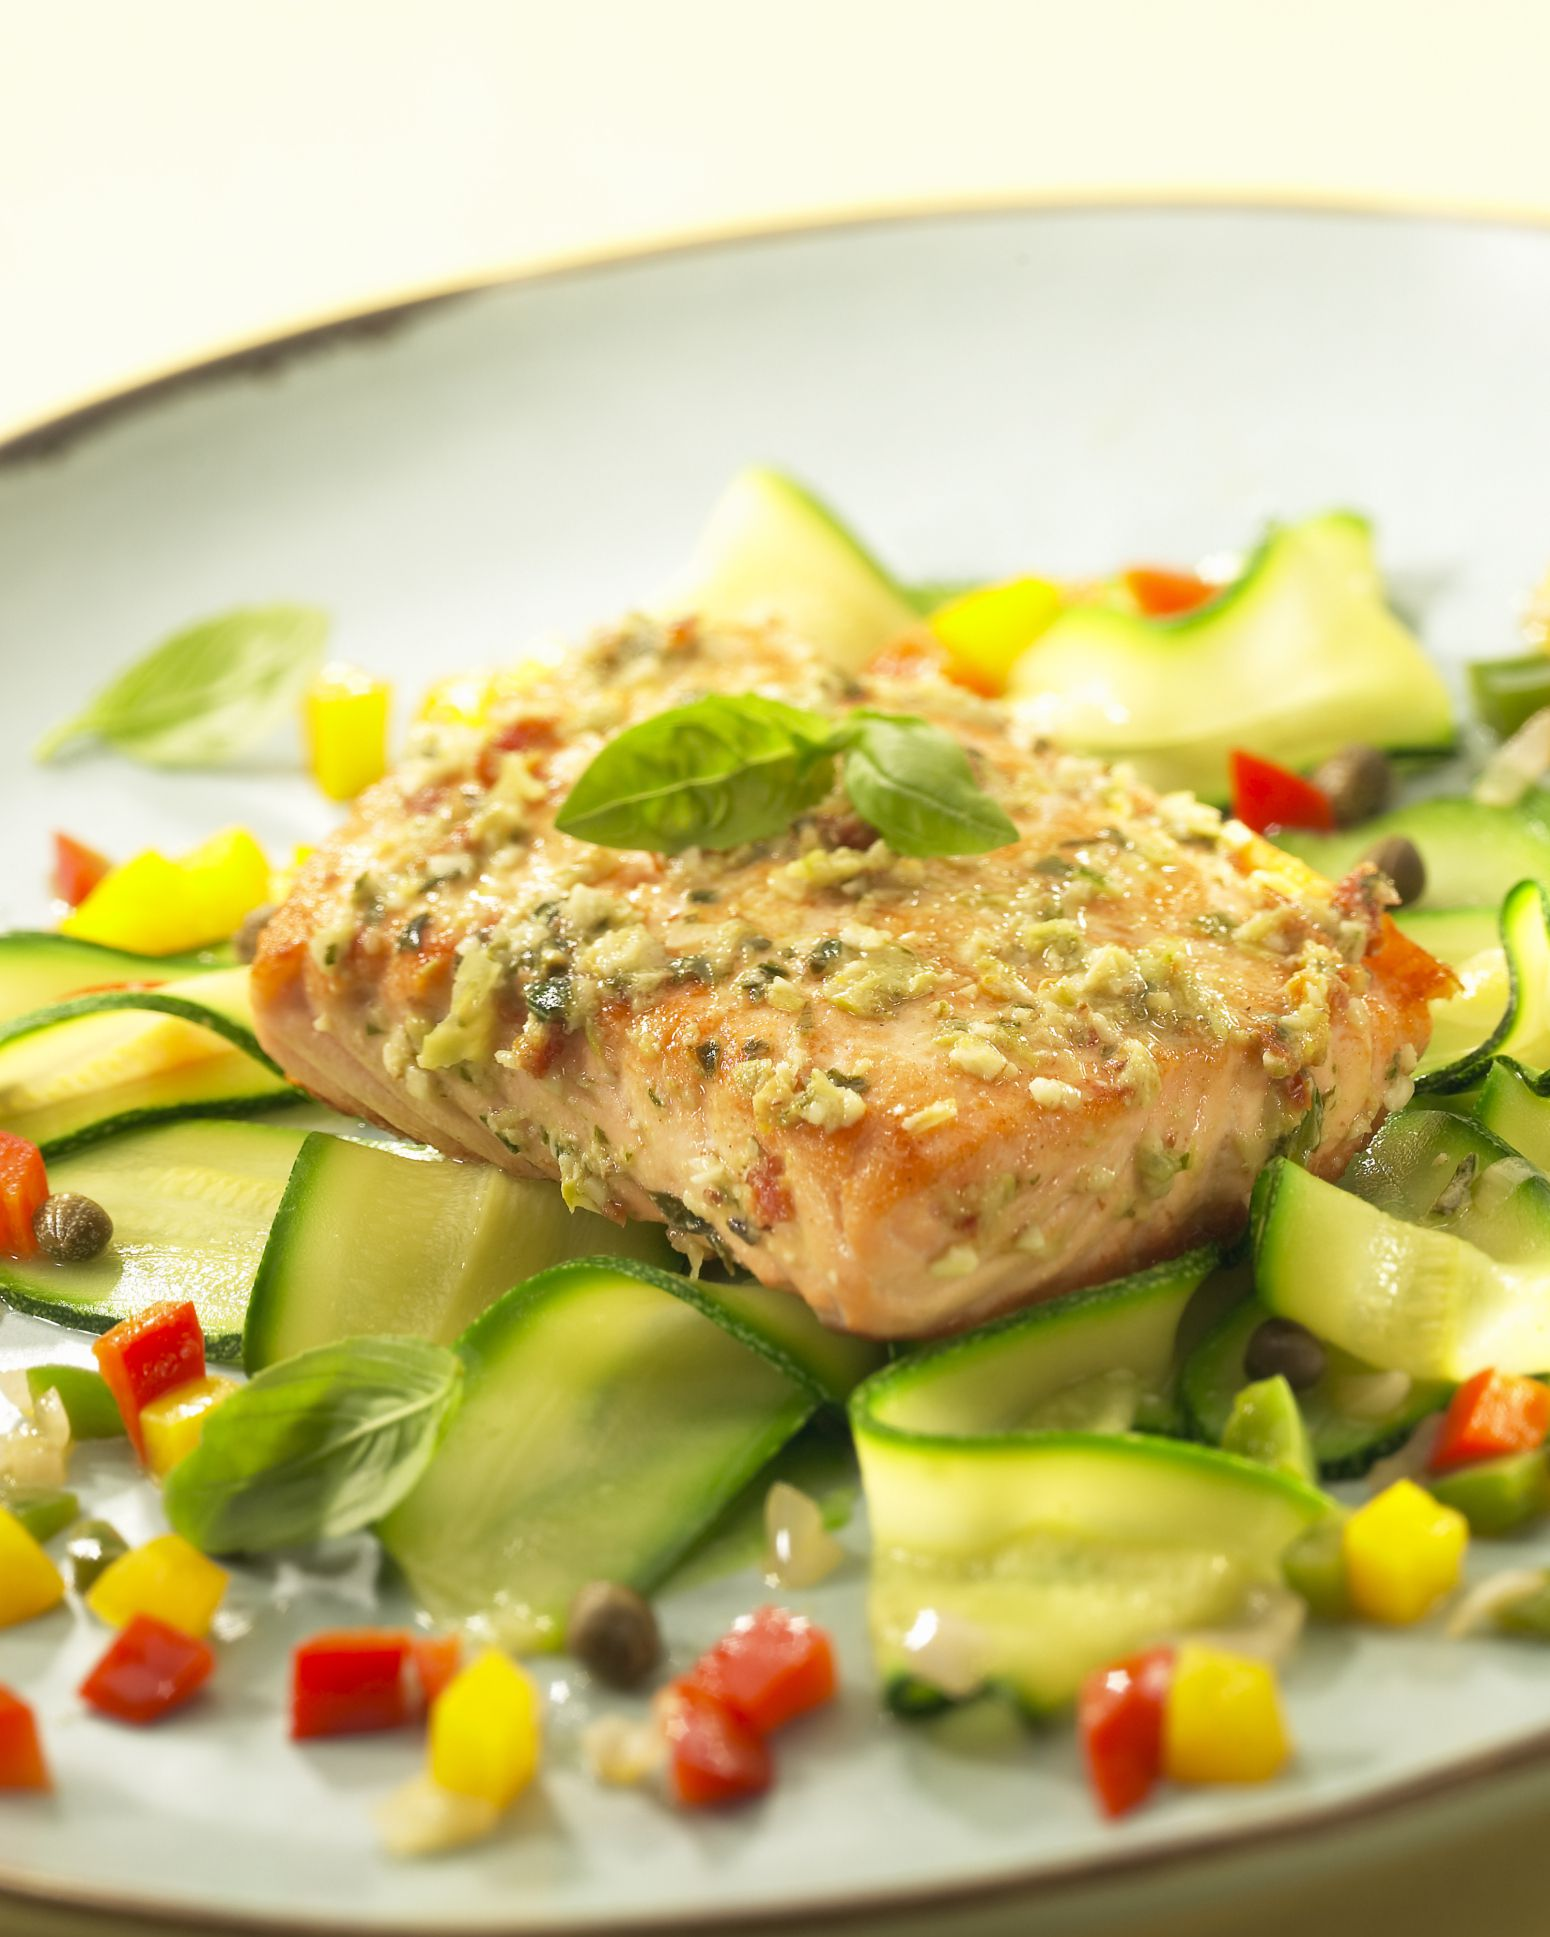 Kosher lemon garlic baked salmon fillet recipe a cookbook authors favorite pistachio crusted salmon ccuart Image collections